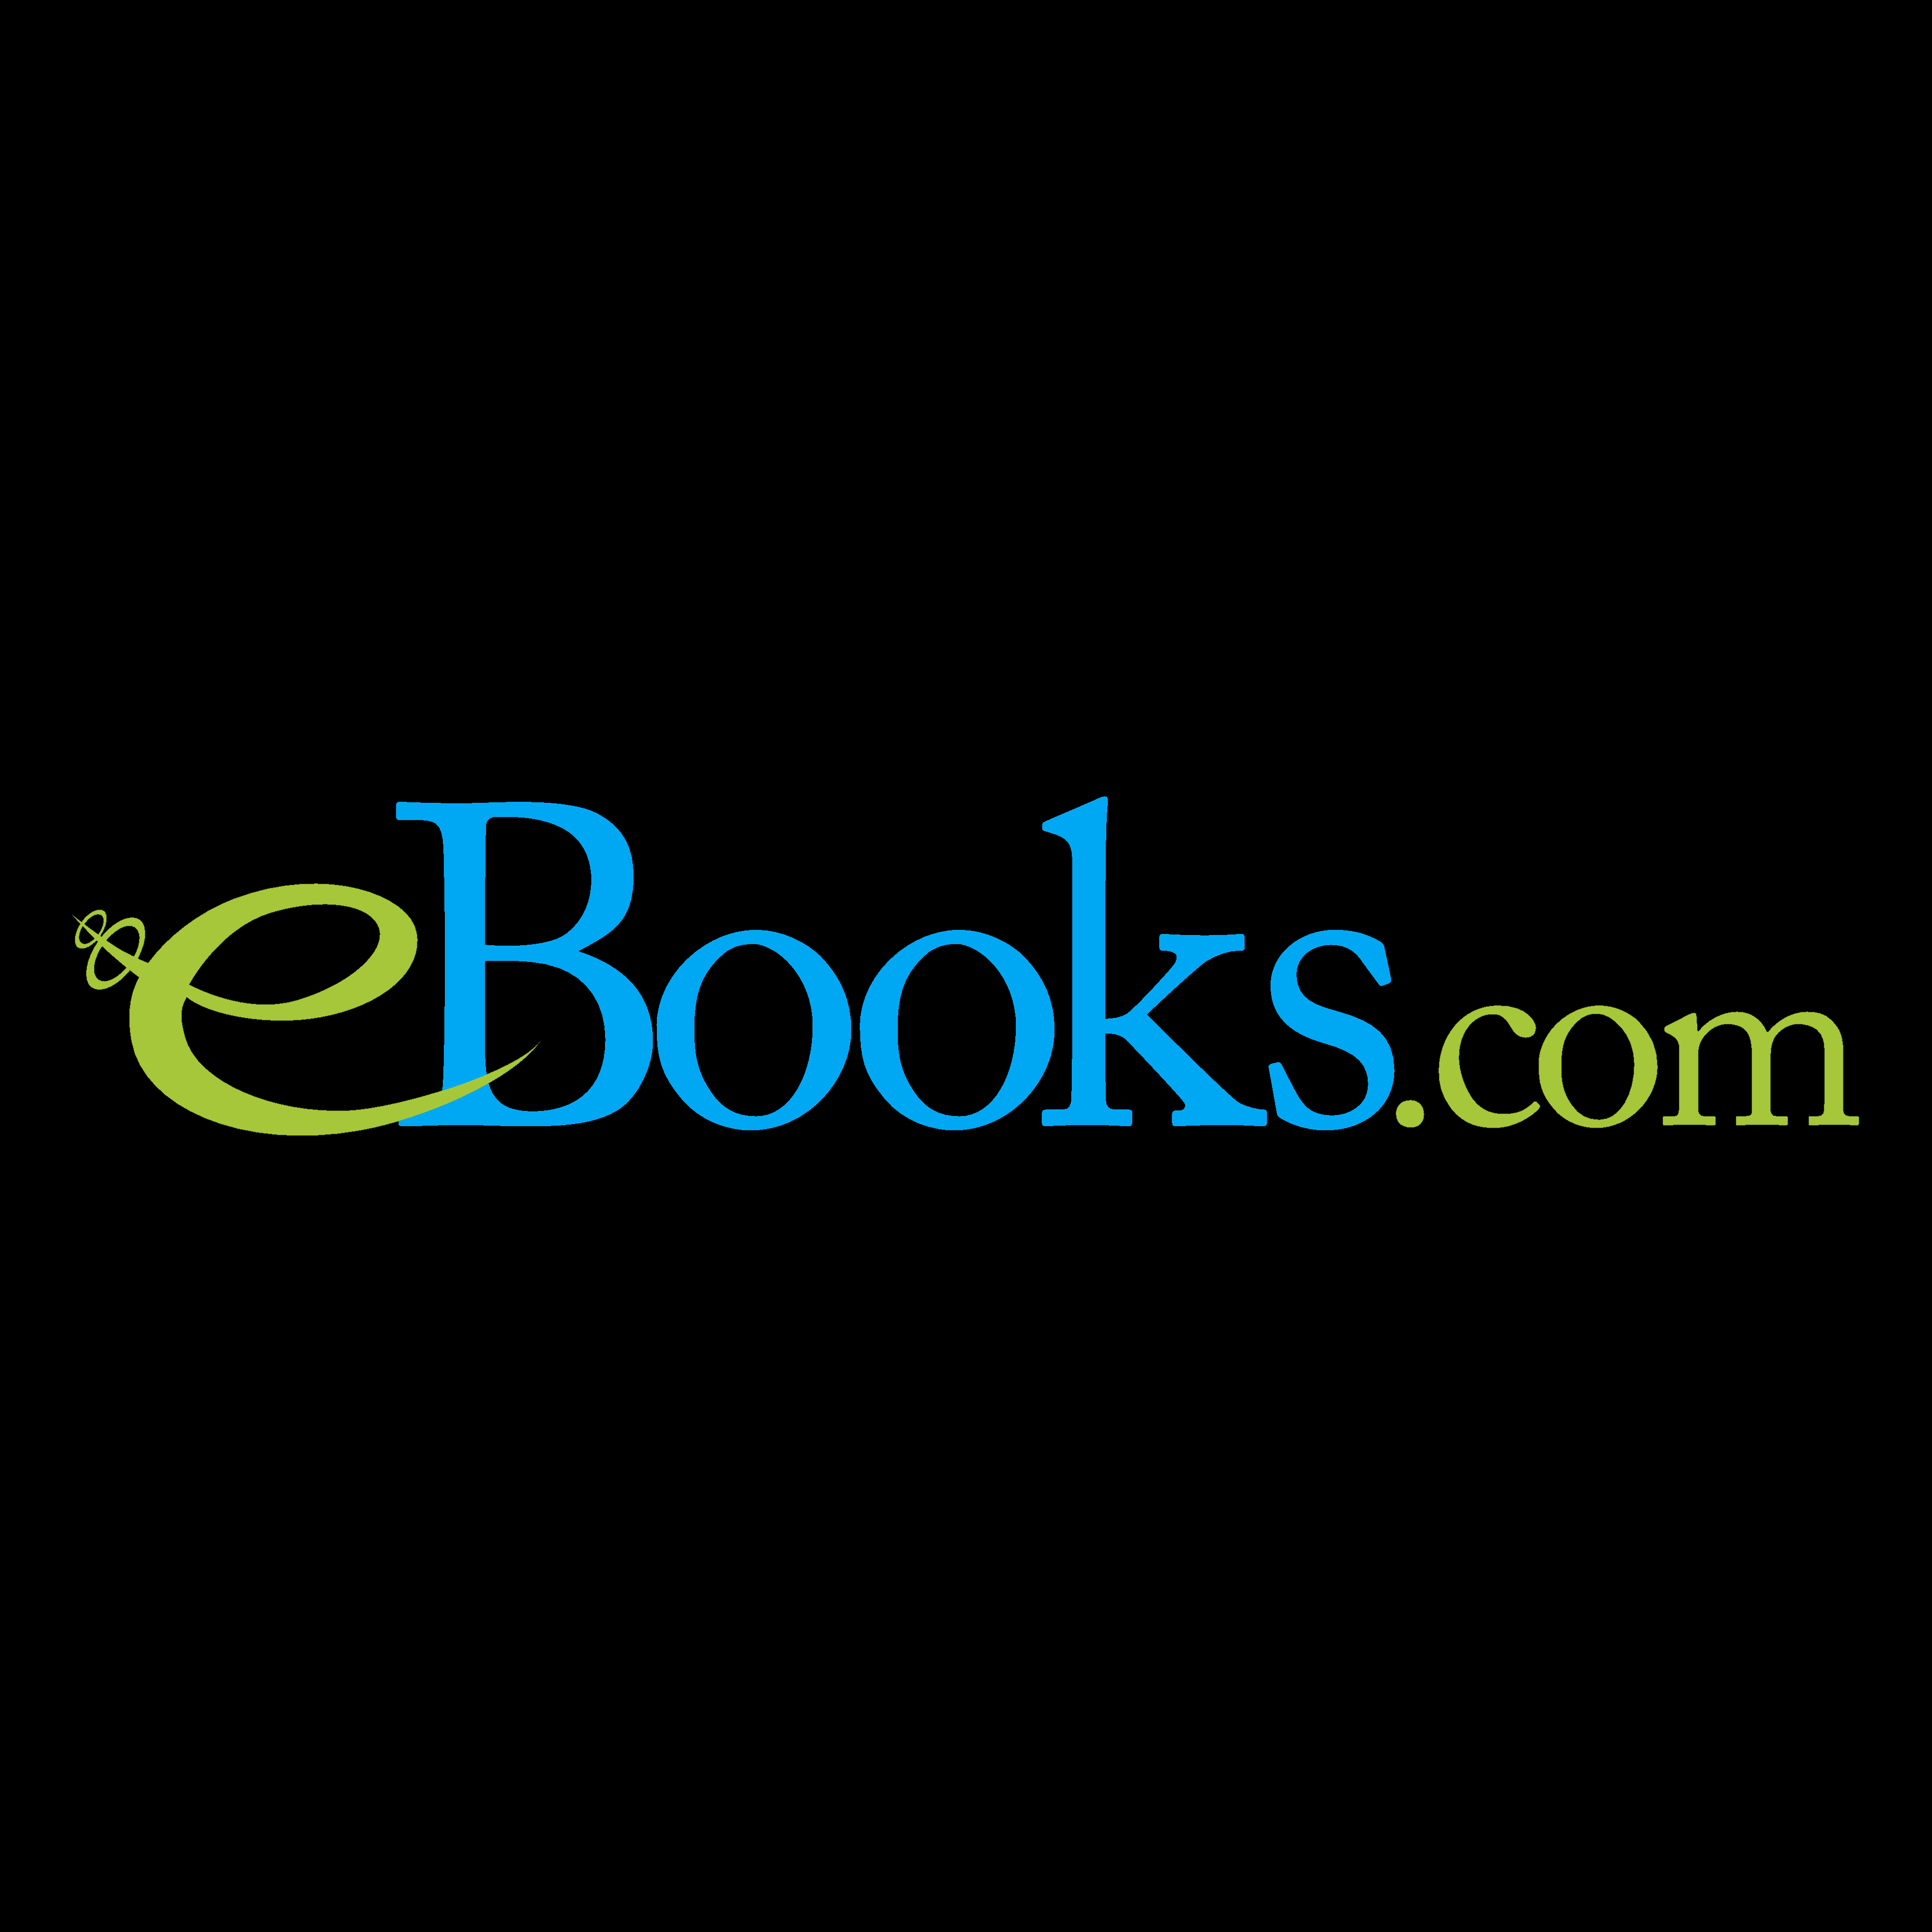 Promotions at eBooks.com